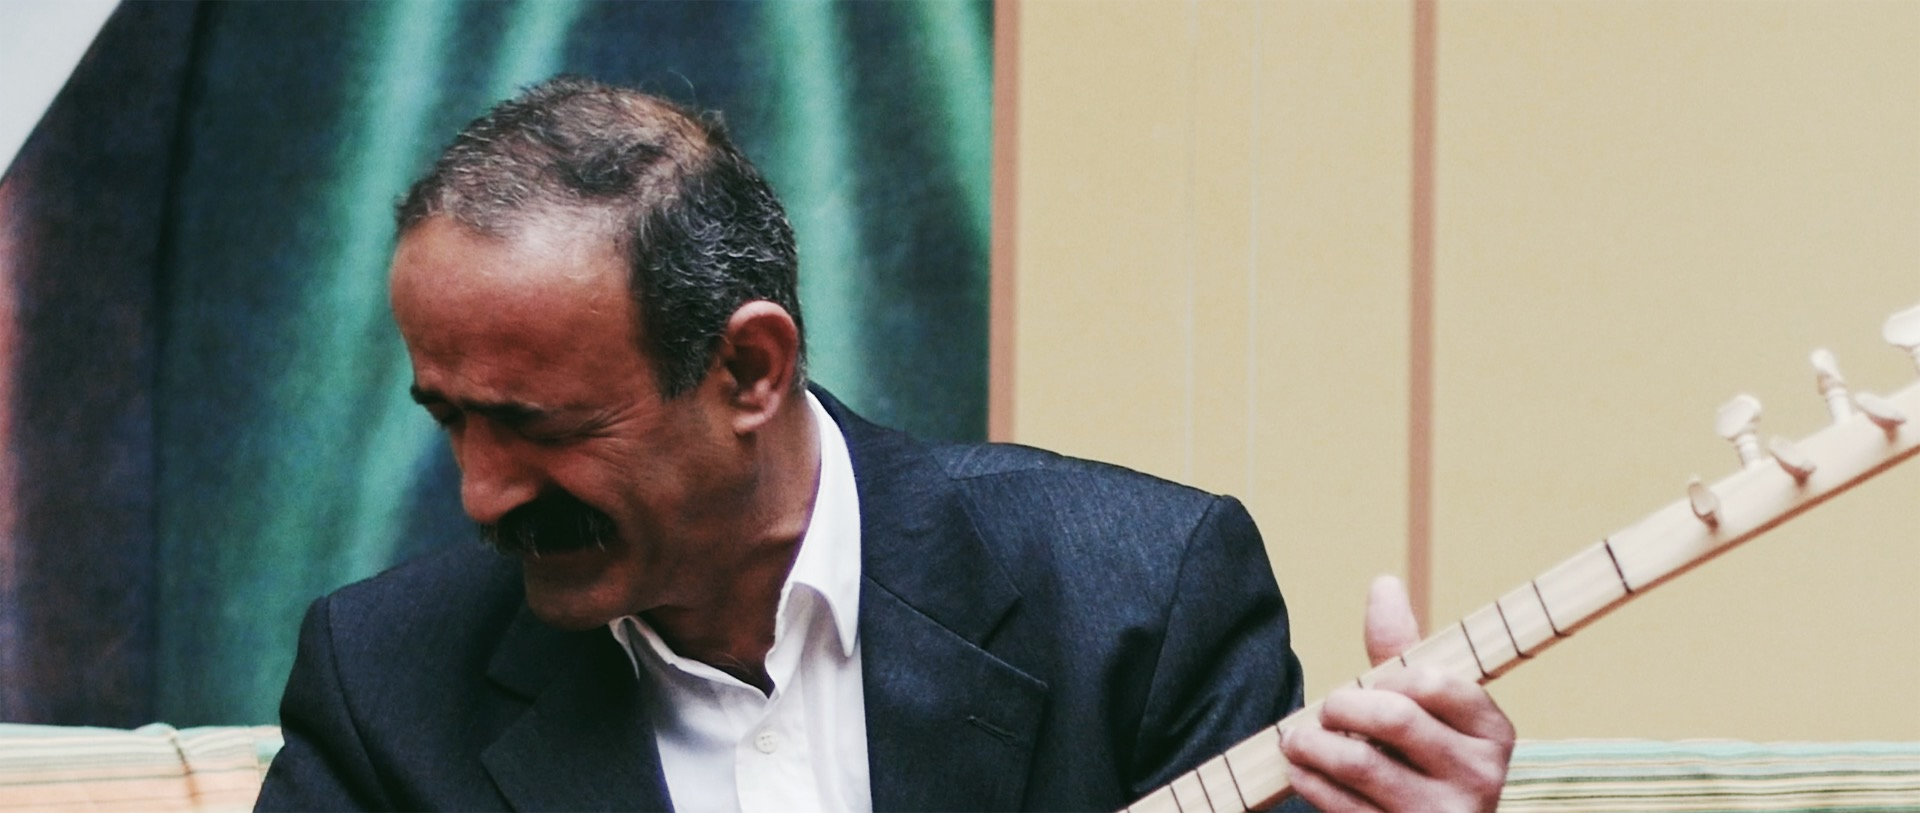 Serdar Dede is a religious leader among the Zaza Alevis. He sings and plays bağlama to help members of his community deal with grief.